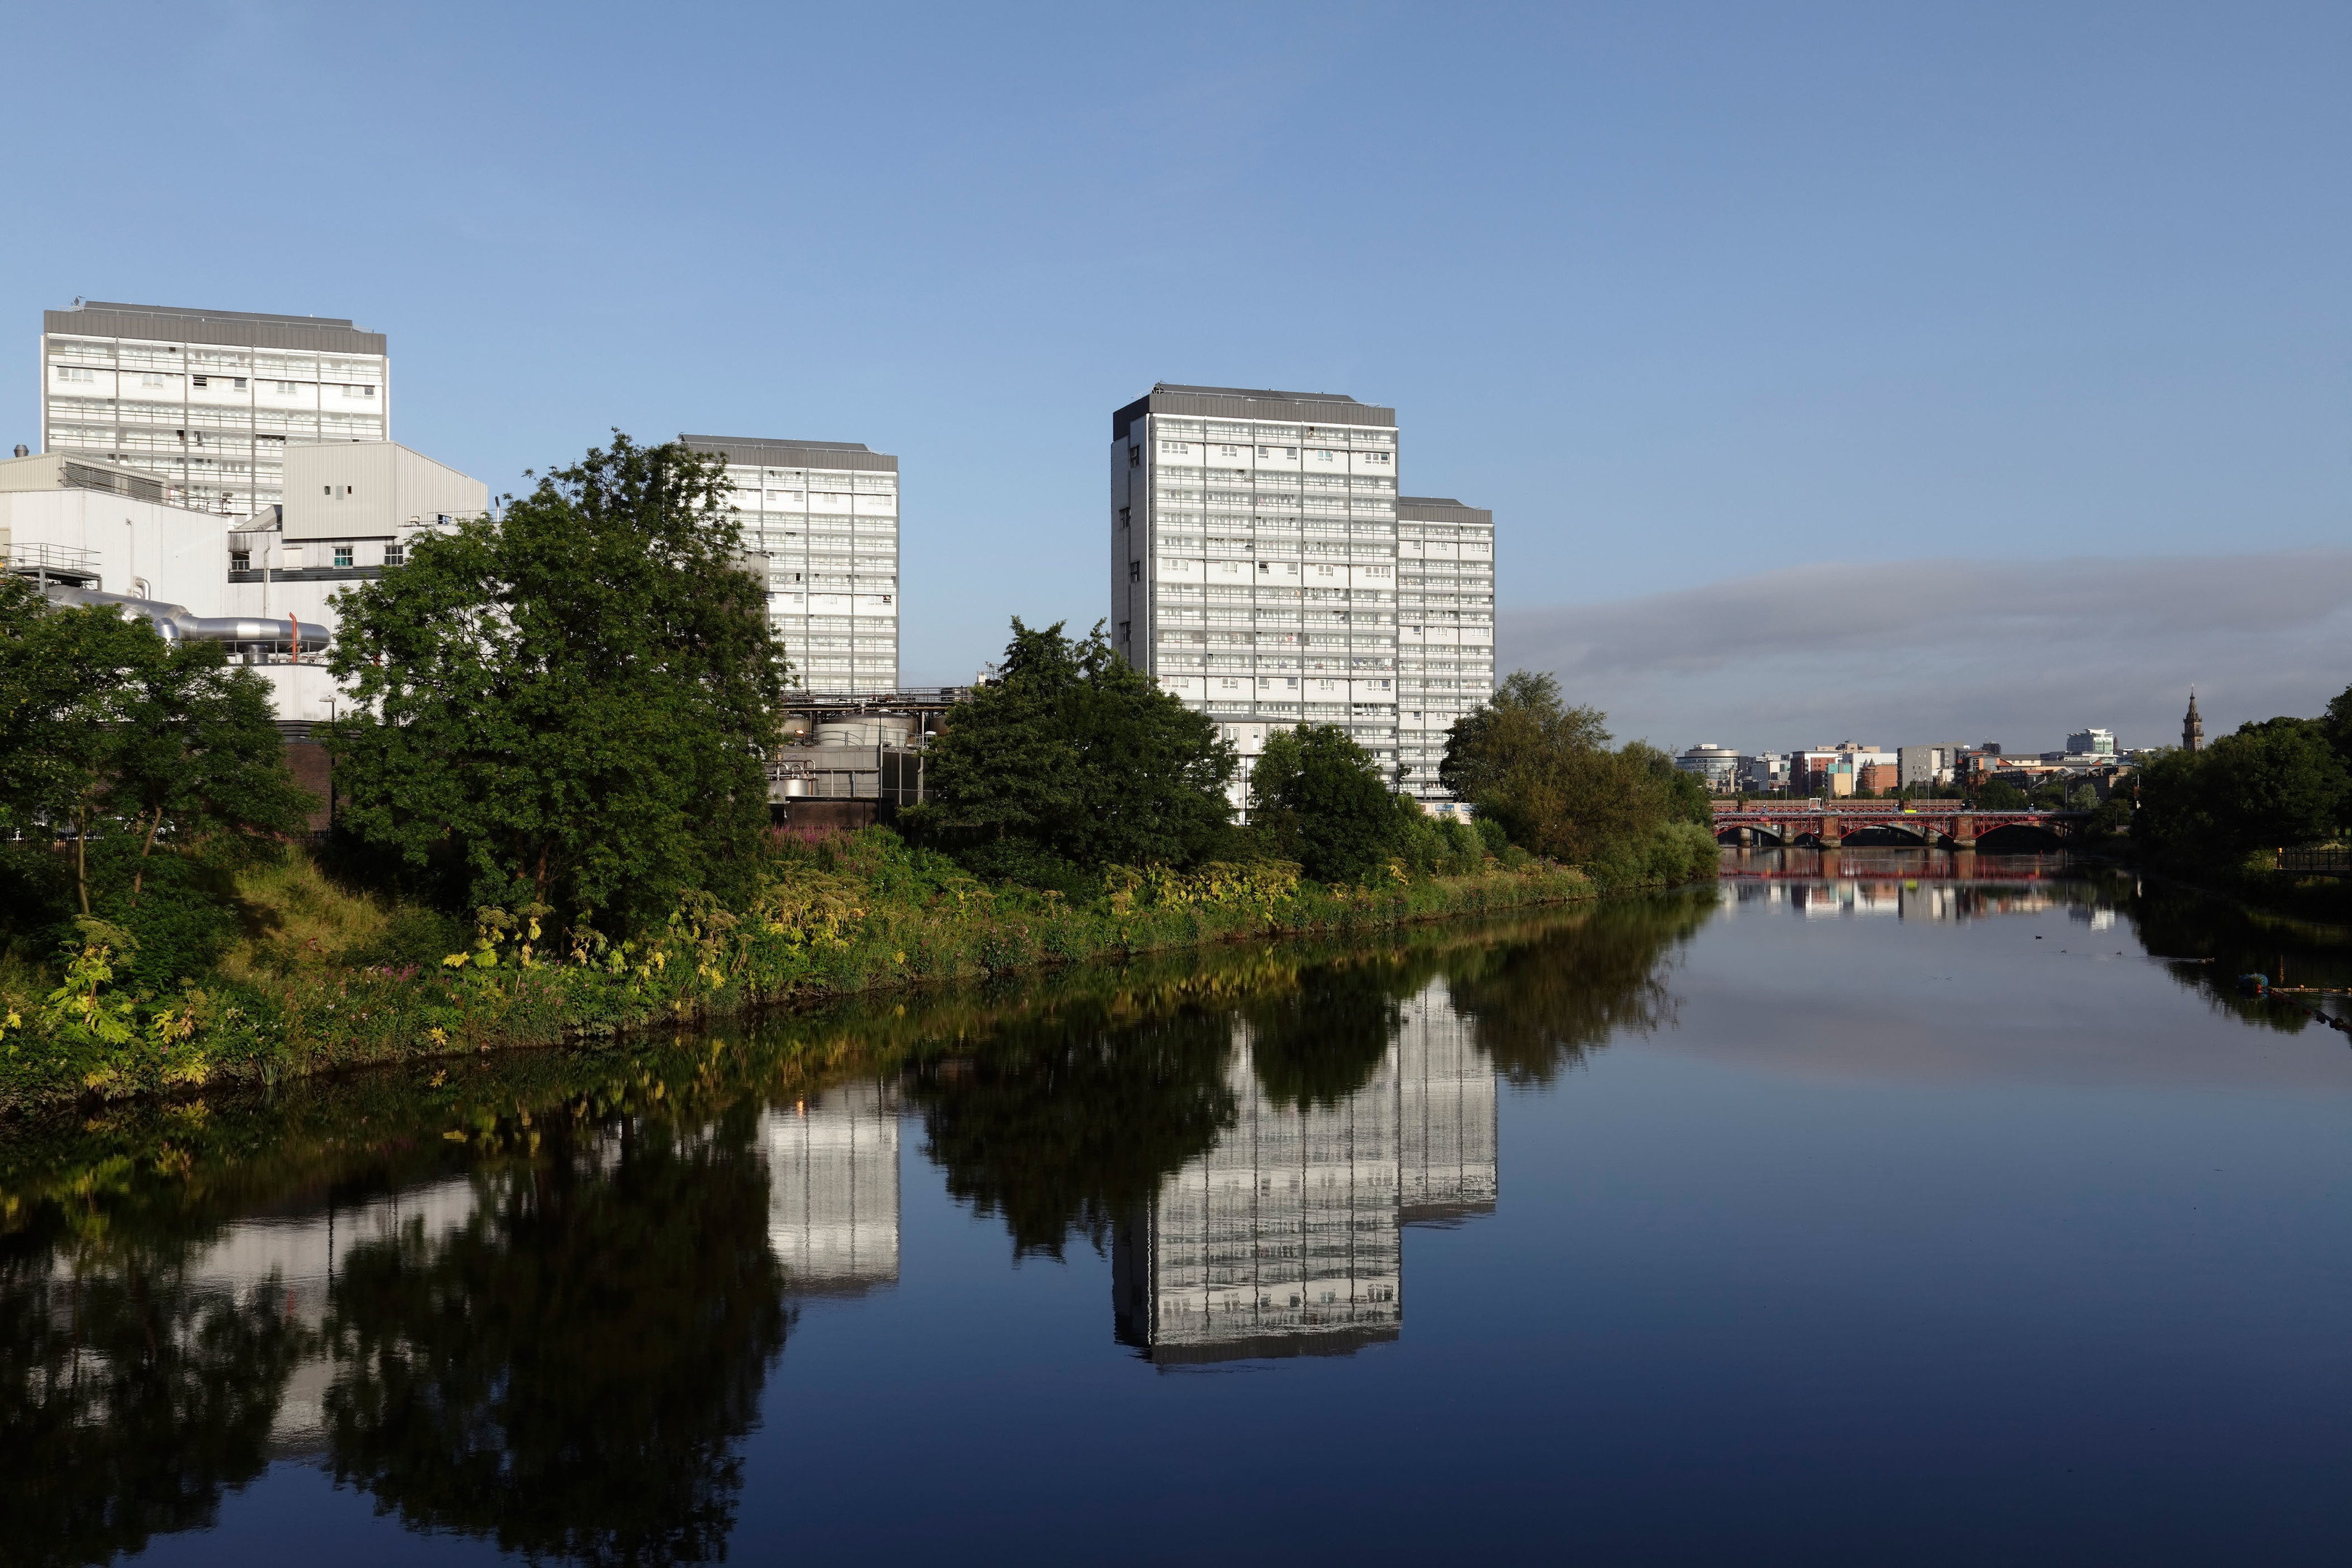 View West along the River Clyde to housing tower blocks in the Gorbals area of Glasgow, Scotland, UK